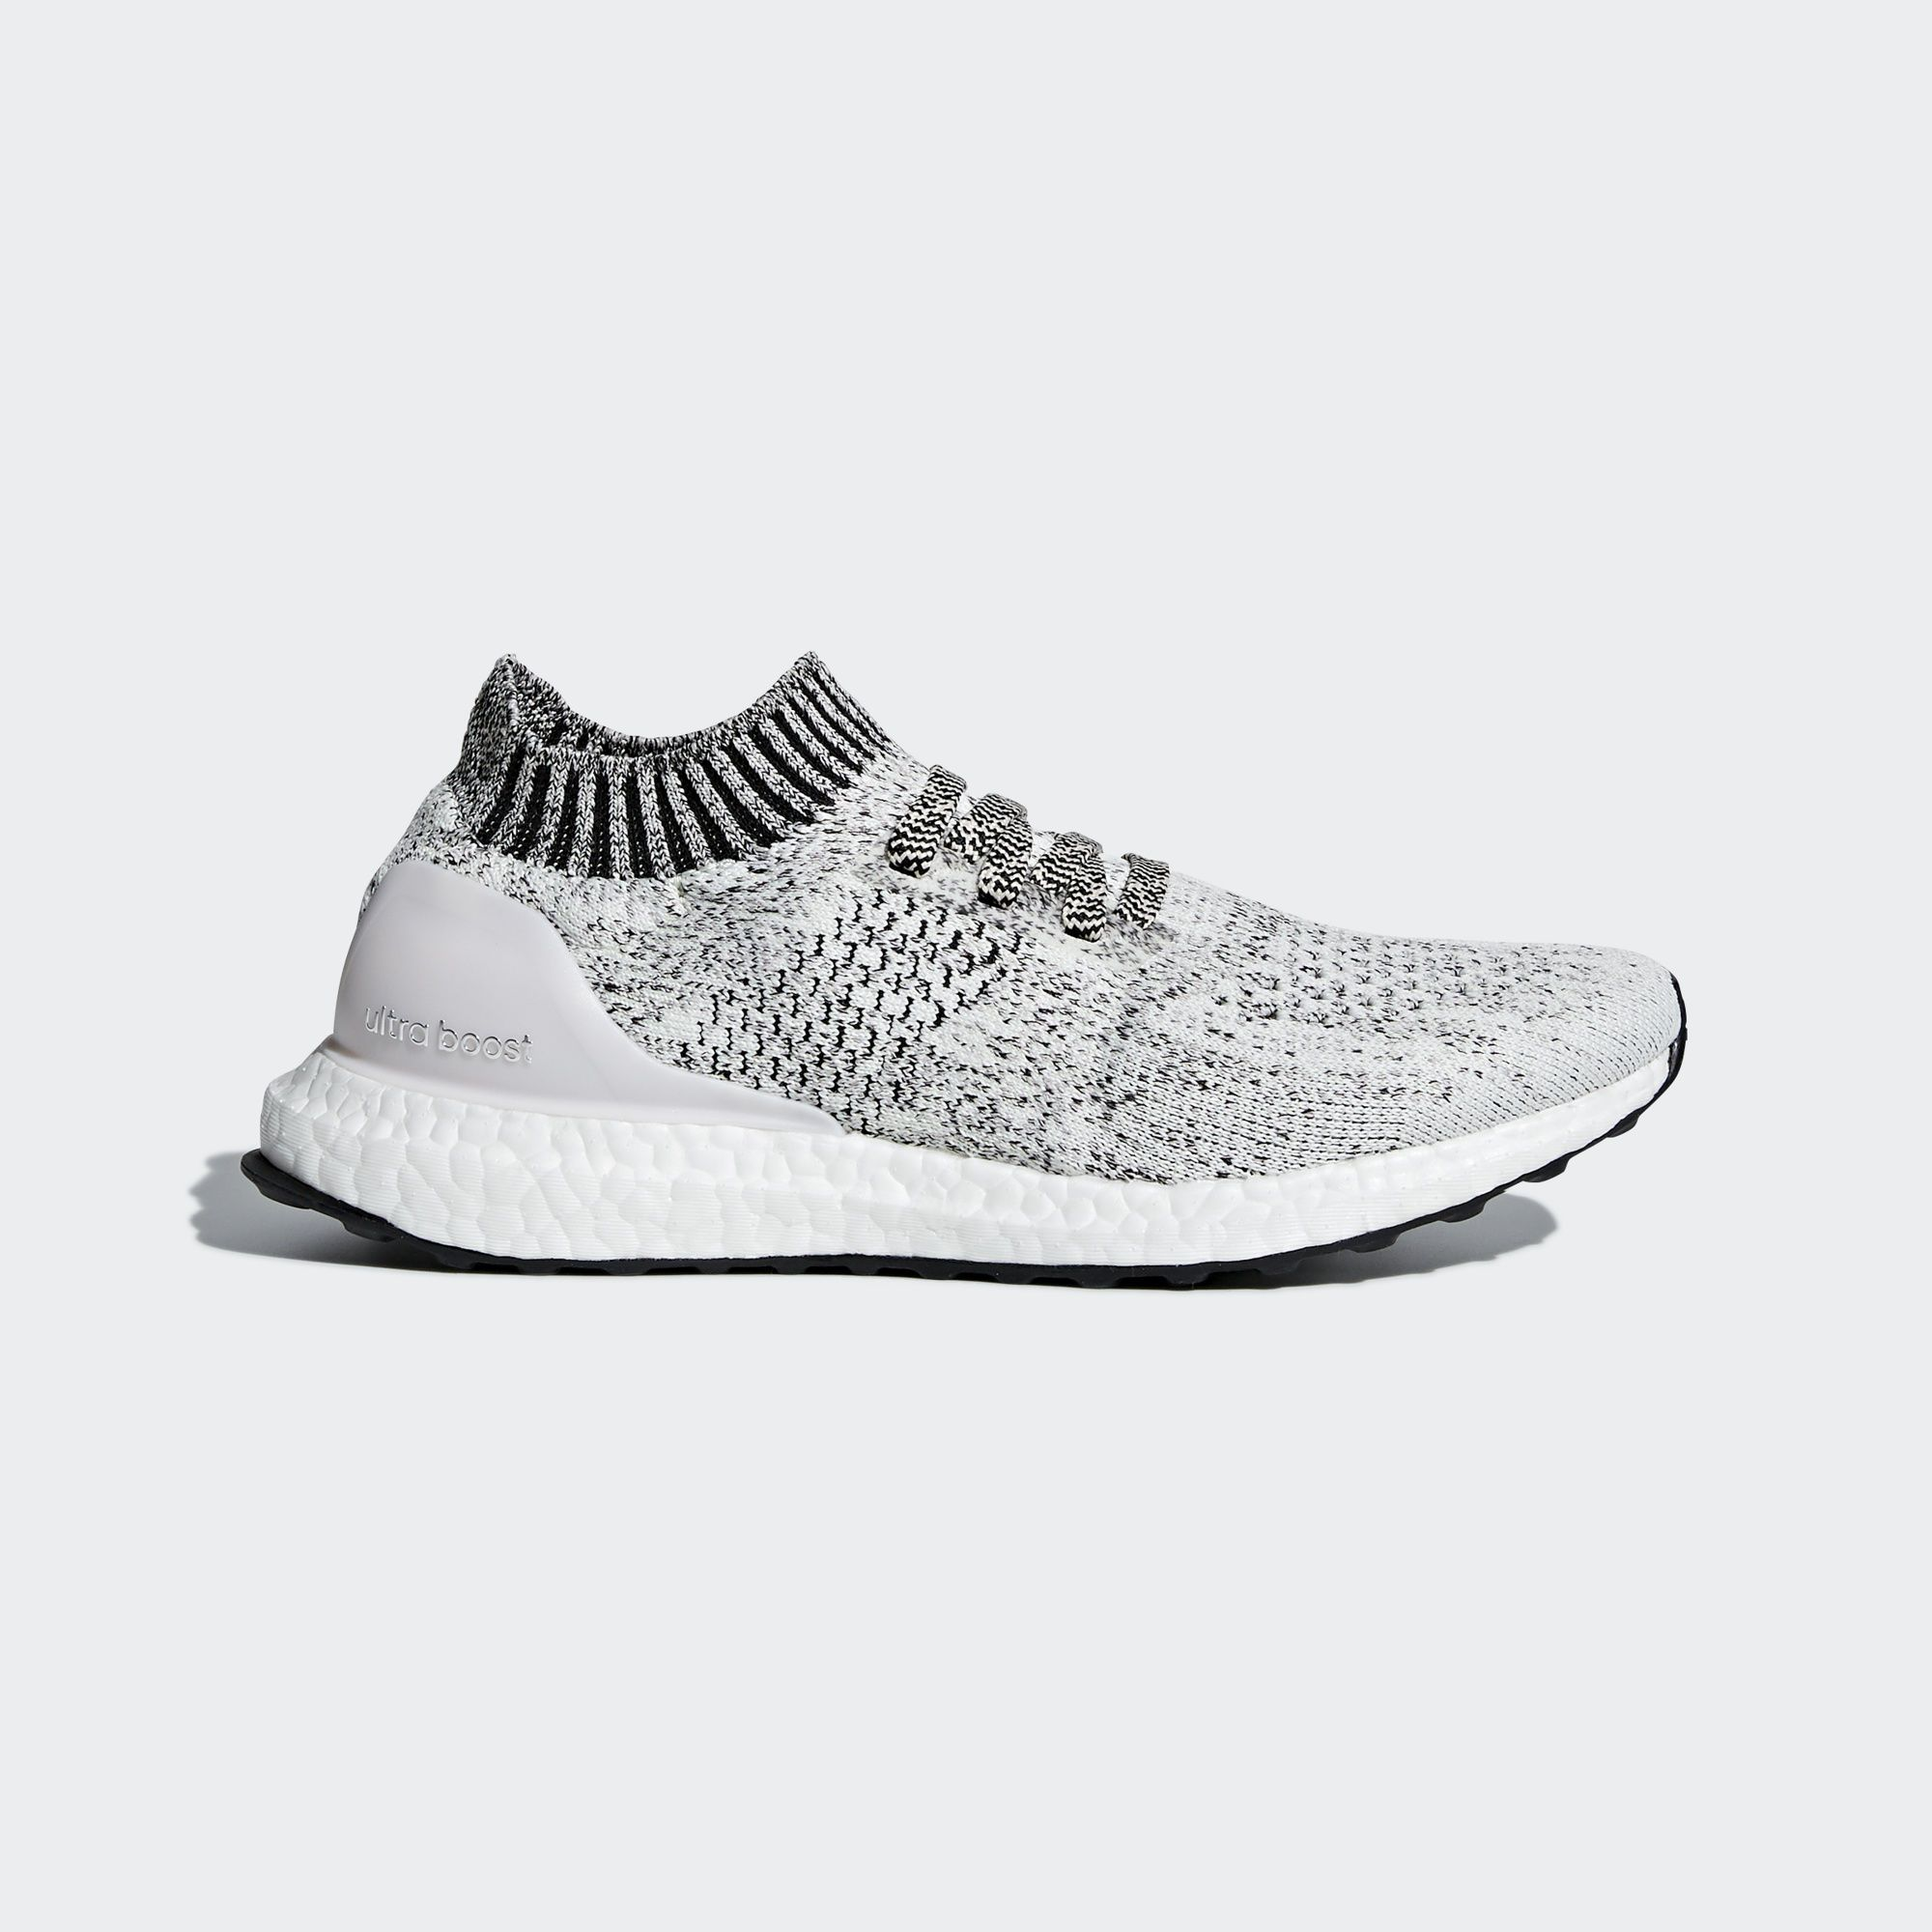 188716ea1c0 Shop the Ultraboost Uncaged Shoes - Not Defined at adidas.com us! See all  the styles and colors of Ultraboost Uncaged Shoes - Not Defined at the  official ...